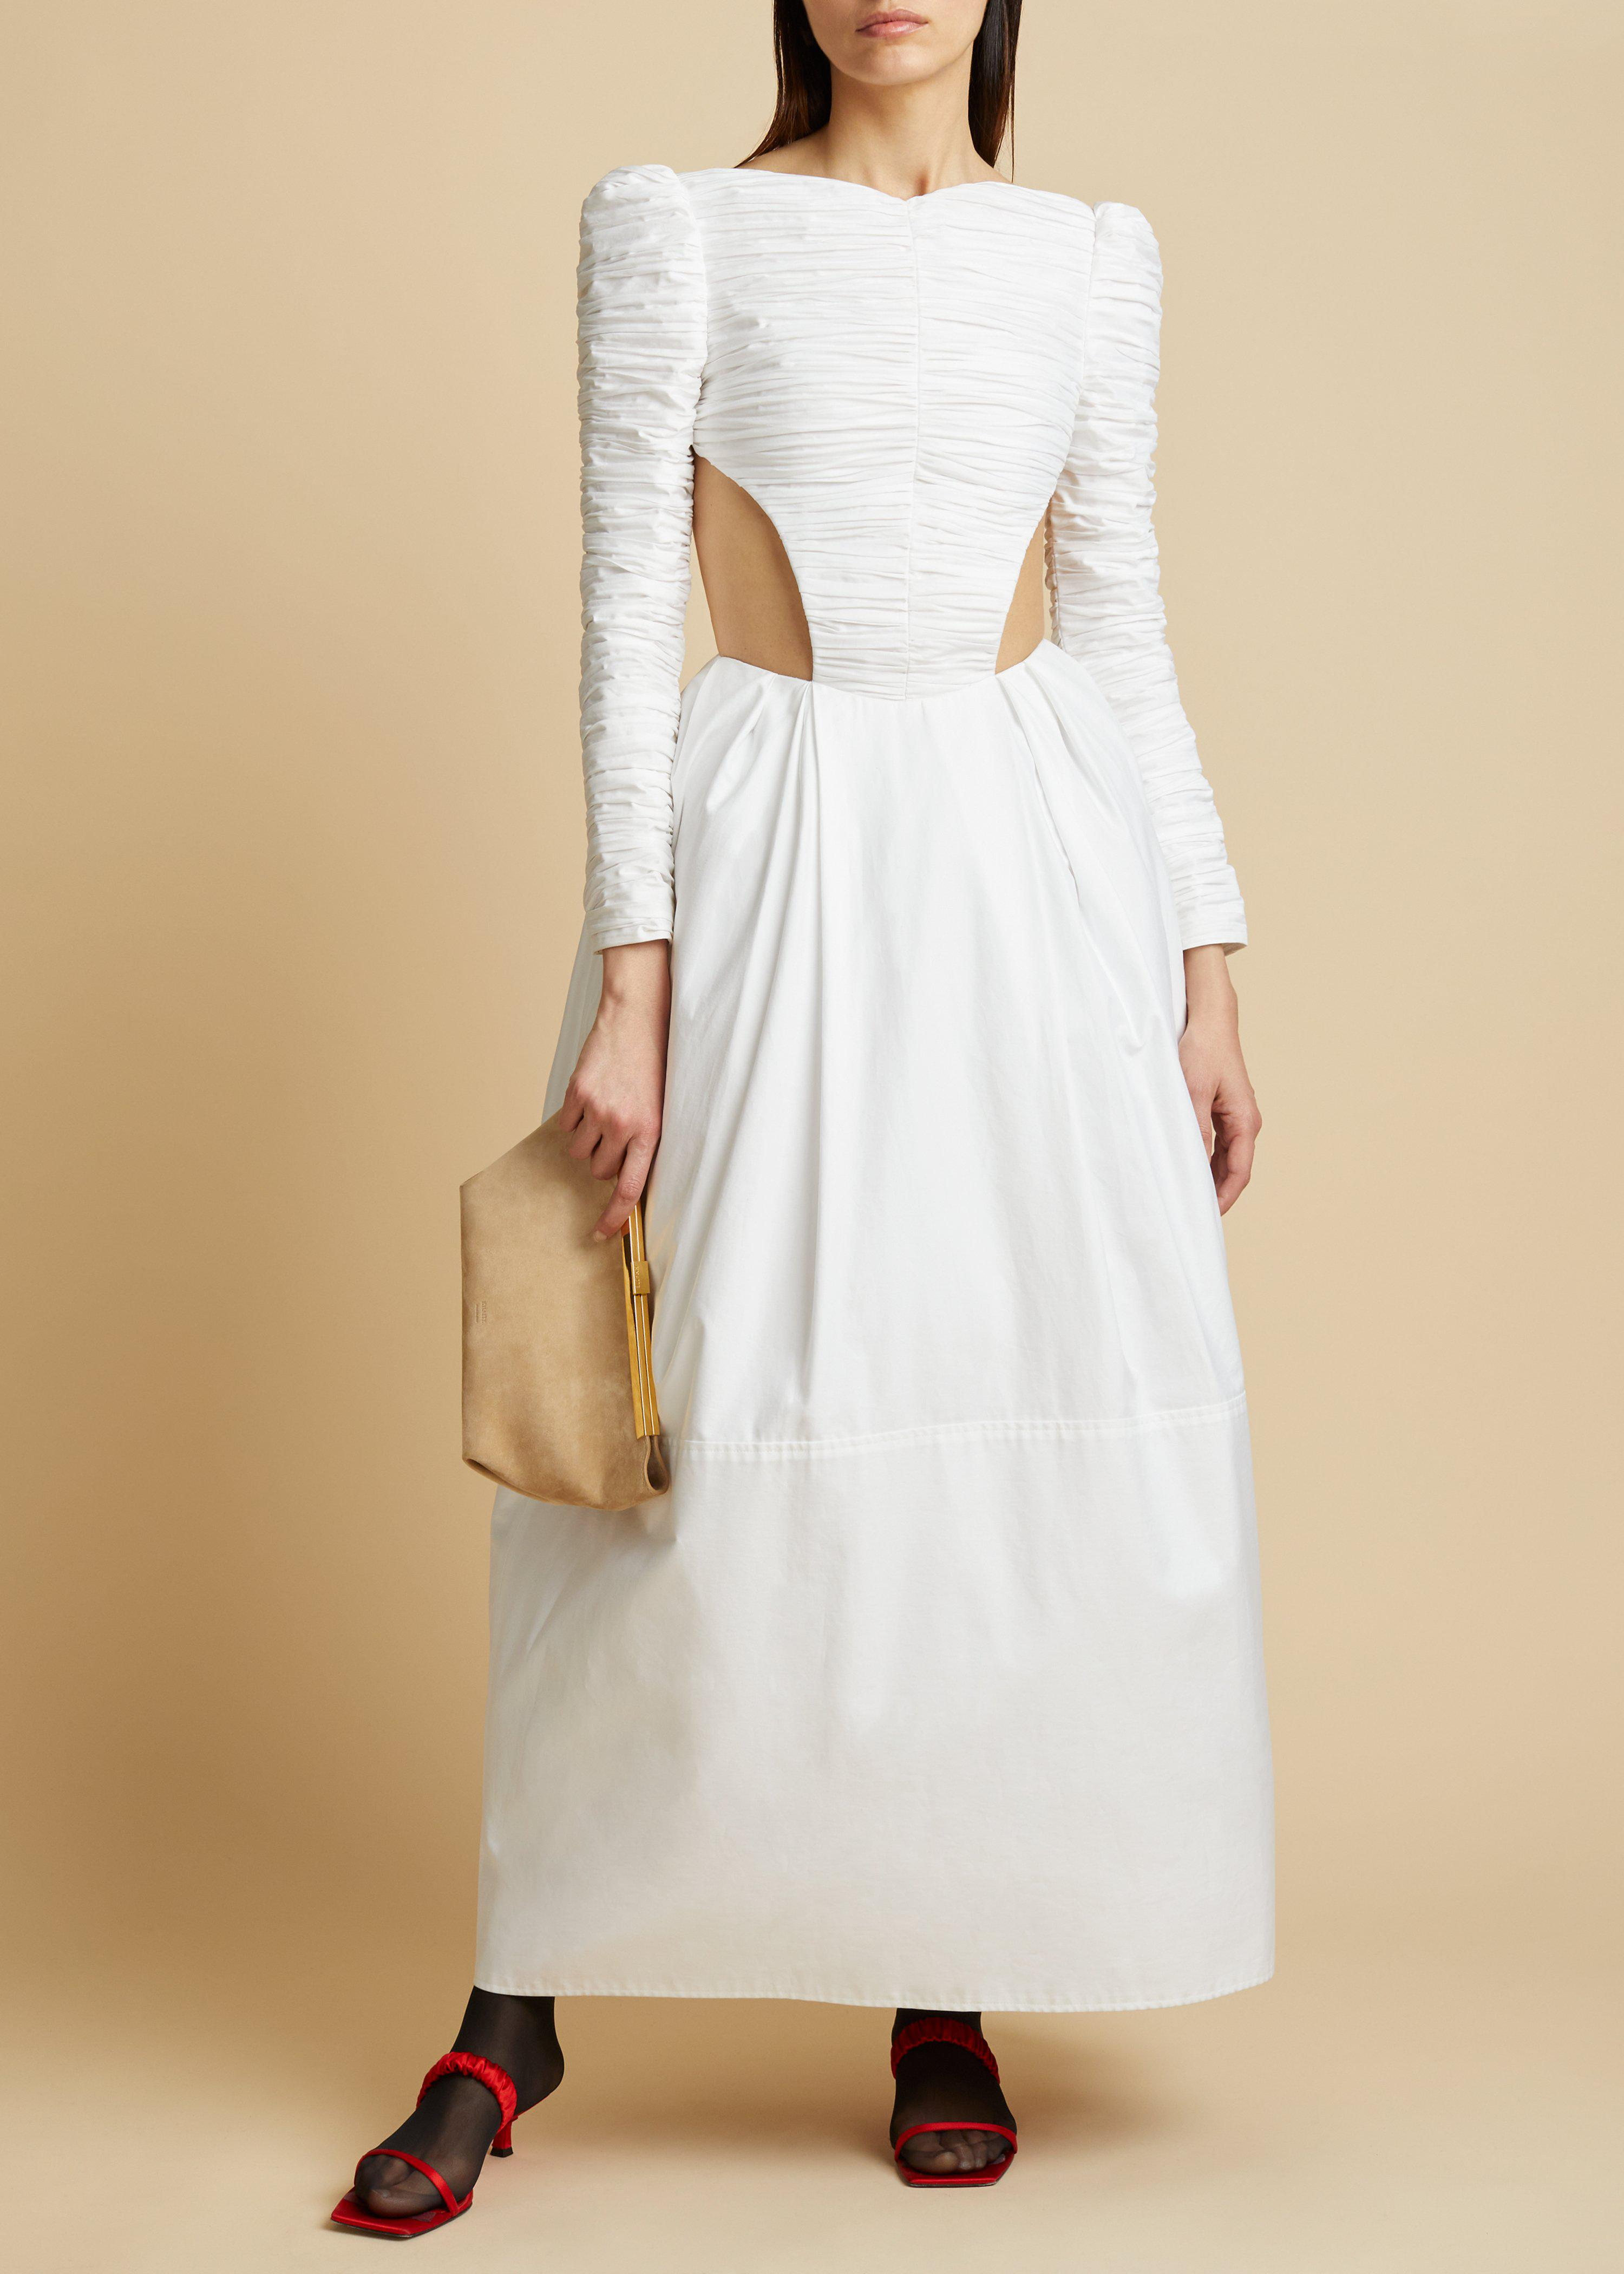 The Rosaline Dress with Petticoat in White